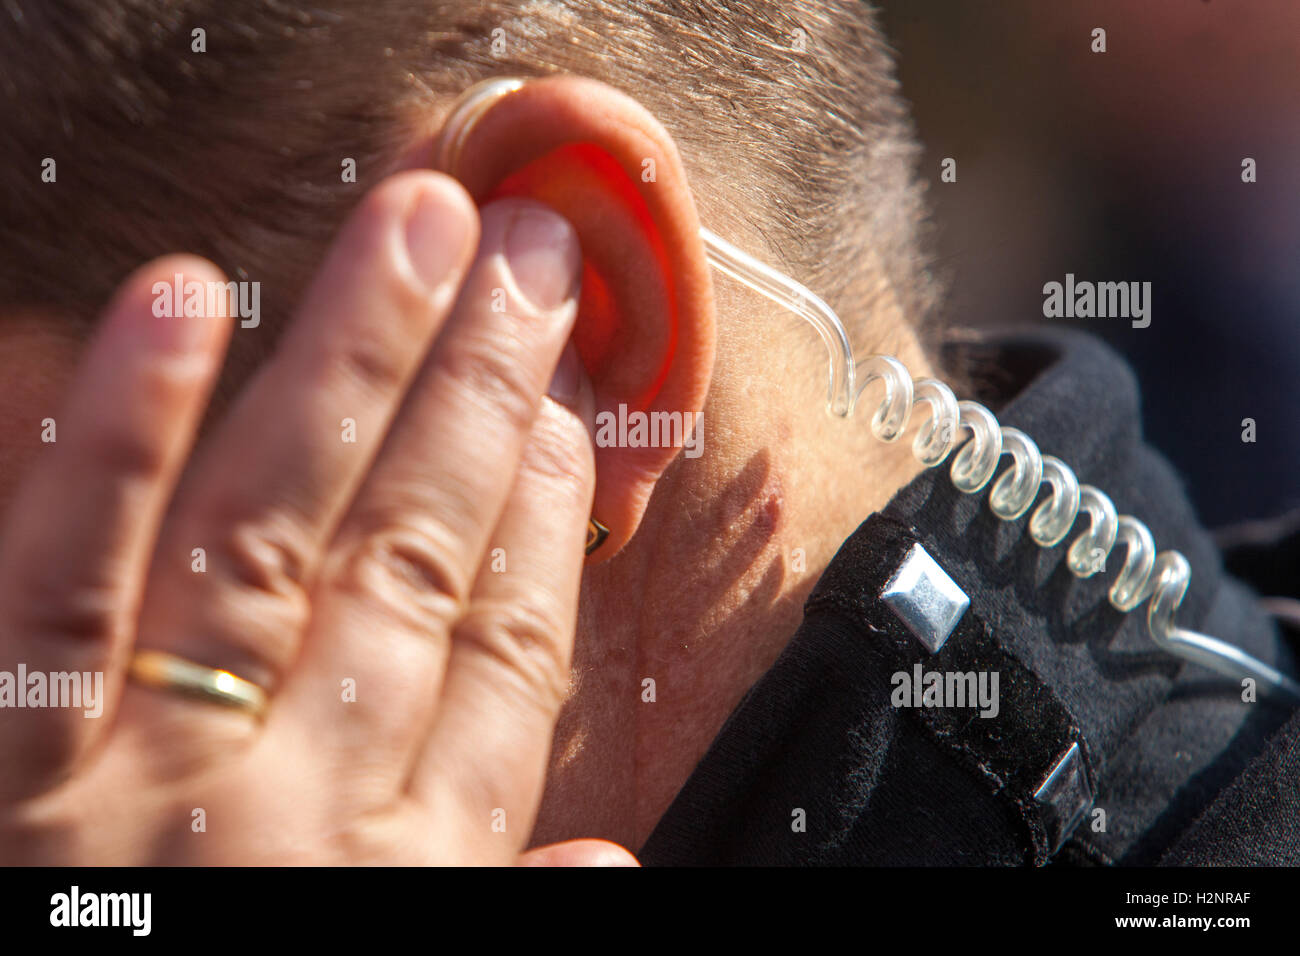 Bodyguard and earpieces, detail ear, security Stock Photo